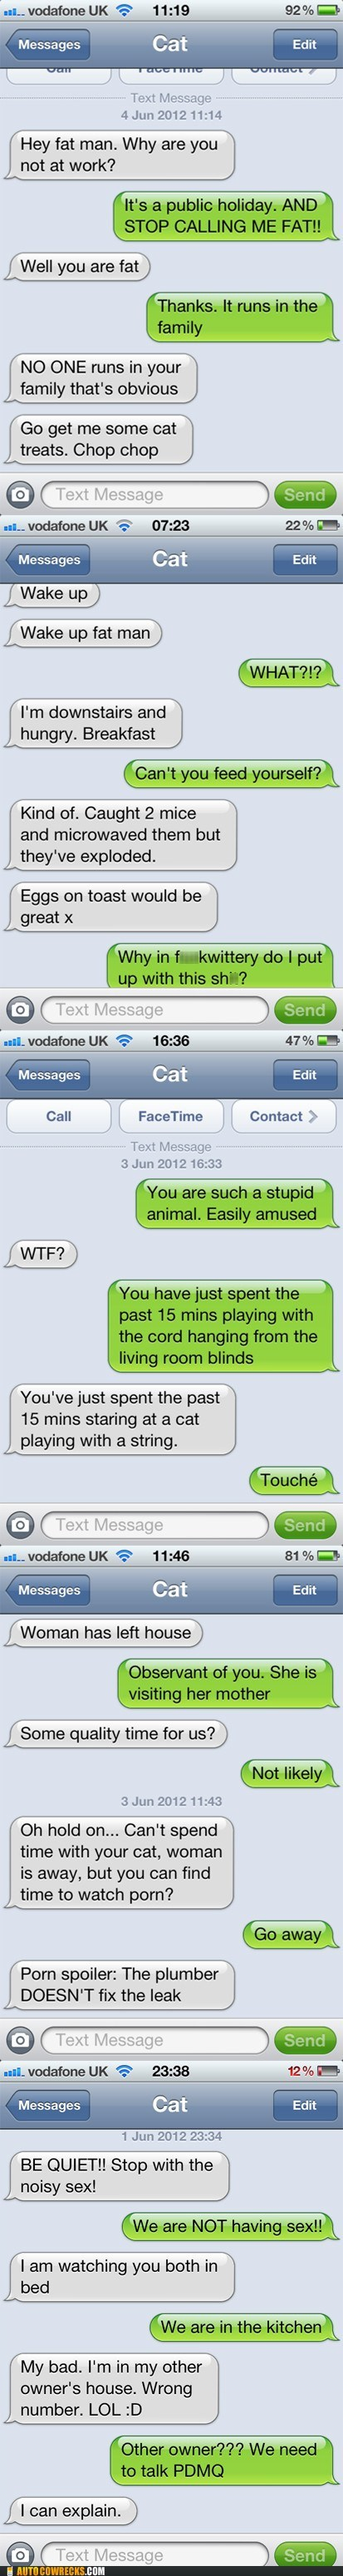 Autocowrecks: Texts From Cat: I Guess It Was Only a Matter of Time